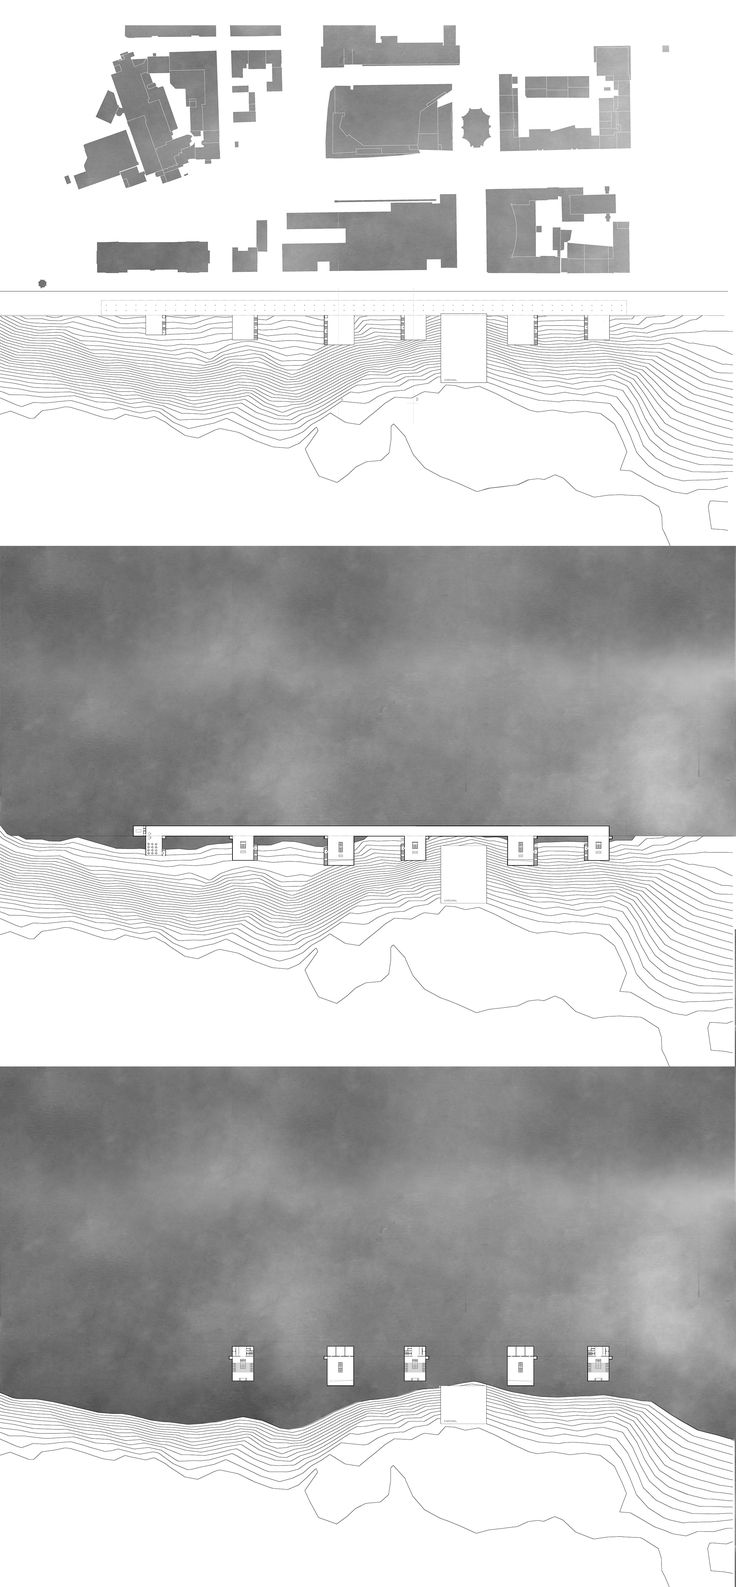 Plan presentation of multifunctional pavilions located in Kassel, Germany. Each pavilion contains another function, depends on current city's needs. Music, literatur, movie, exhibition and DOCUmenta archive pavilion. Architecture on hill. Author : Mateusz Pietryga